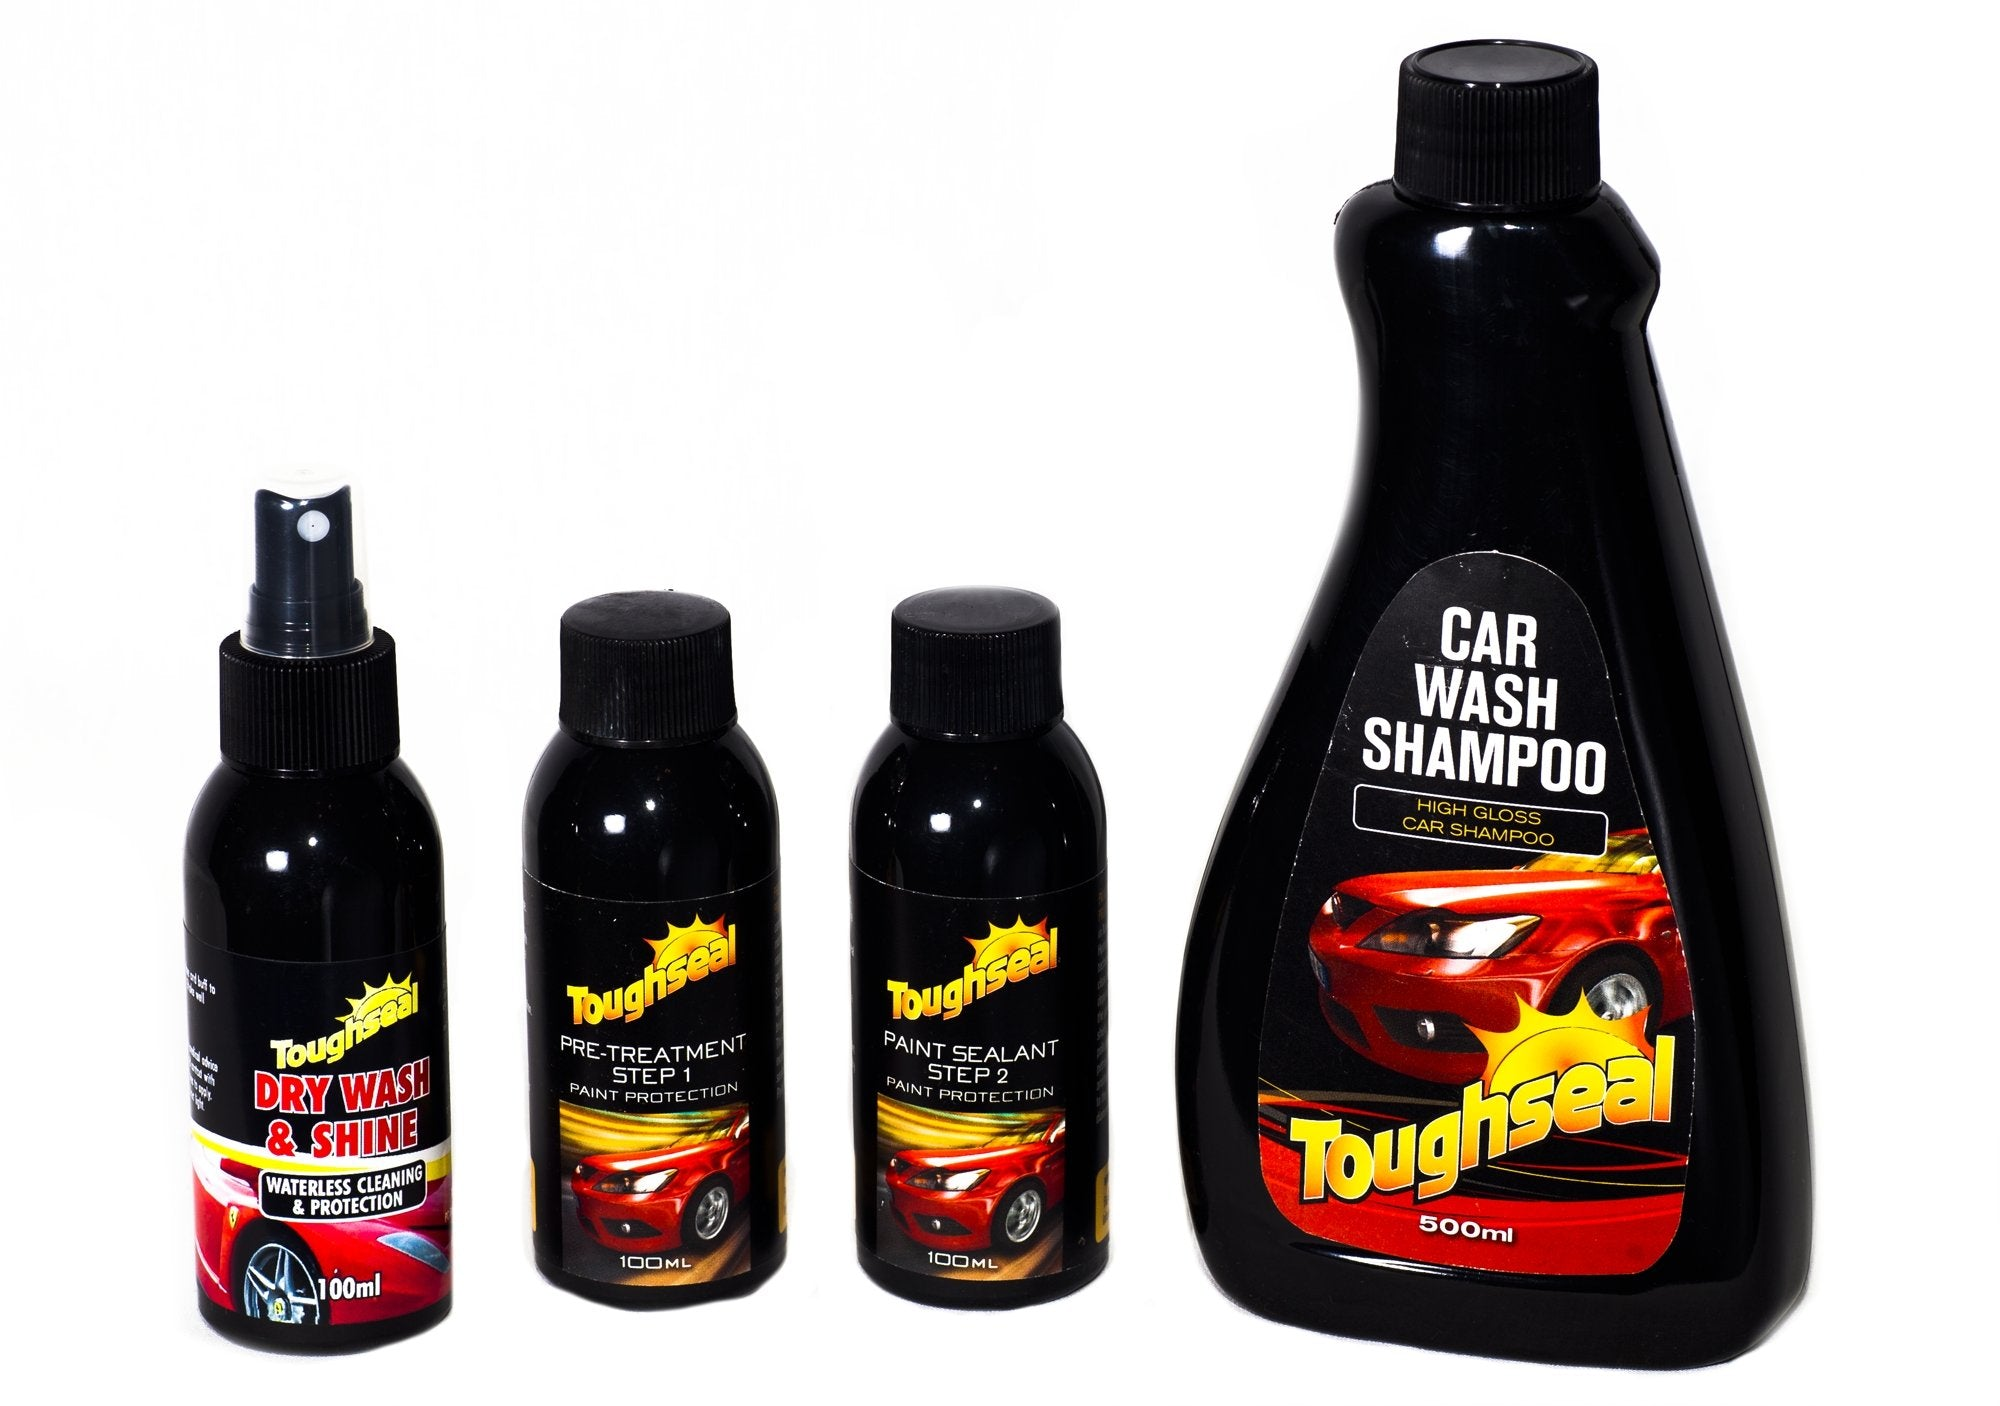 Toughseal Exterior Car Care Paint Protection Dry Shine Wash Shampoo Kit